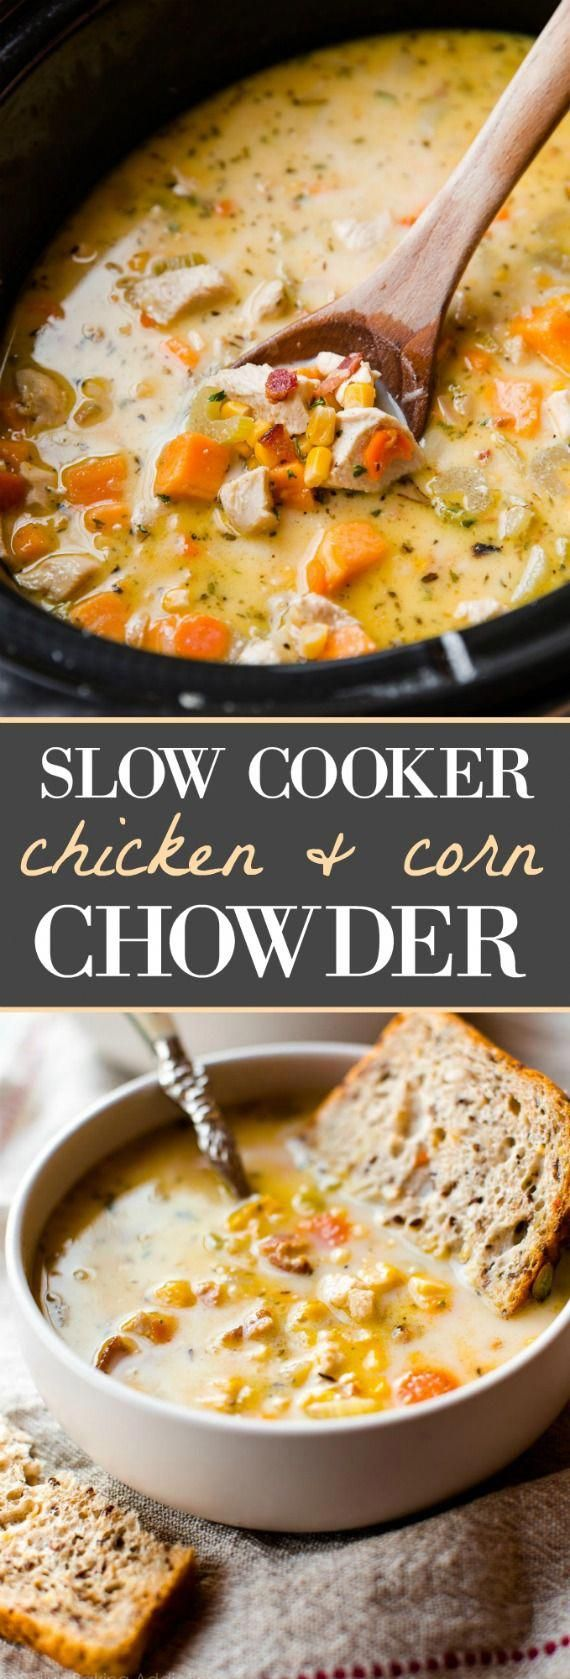 Slow Cooker With Timer | Meals Made In Slow Cooker | Ideas For Crock Pot Cooking 20190209 #crockpotgumbo